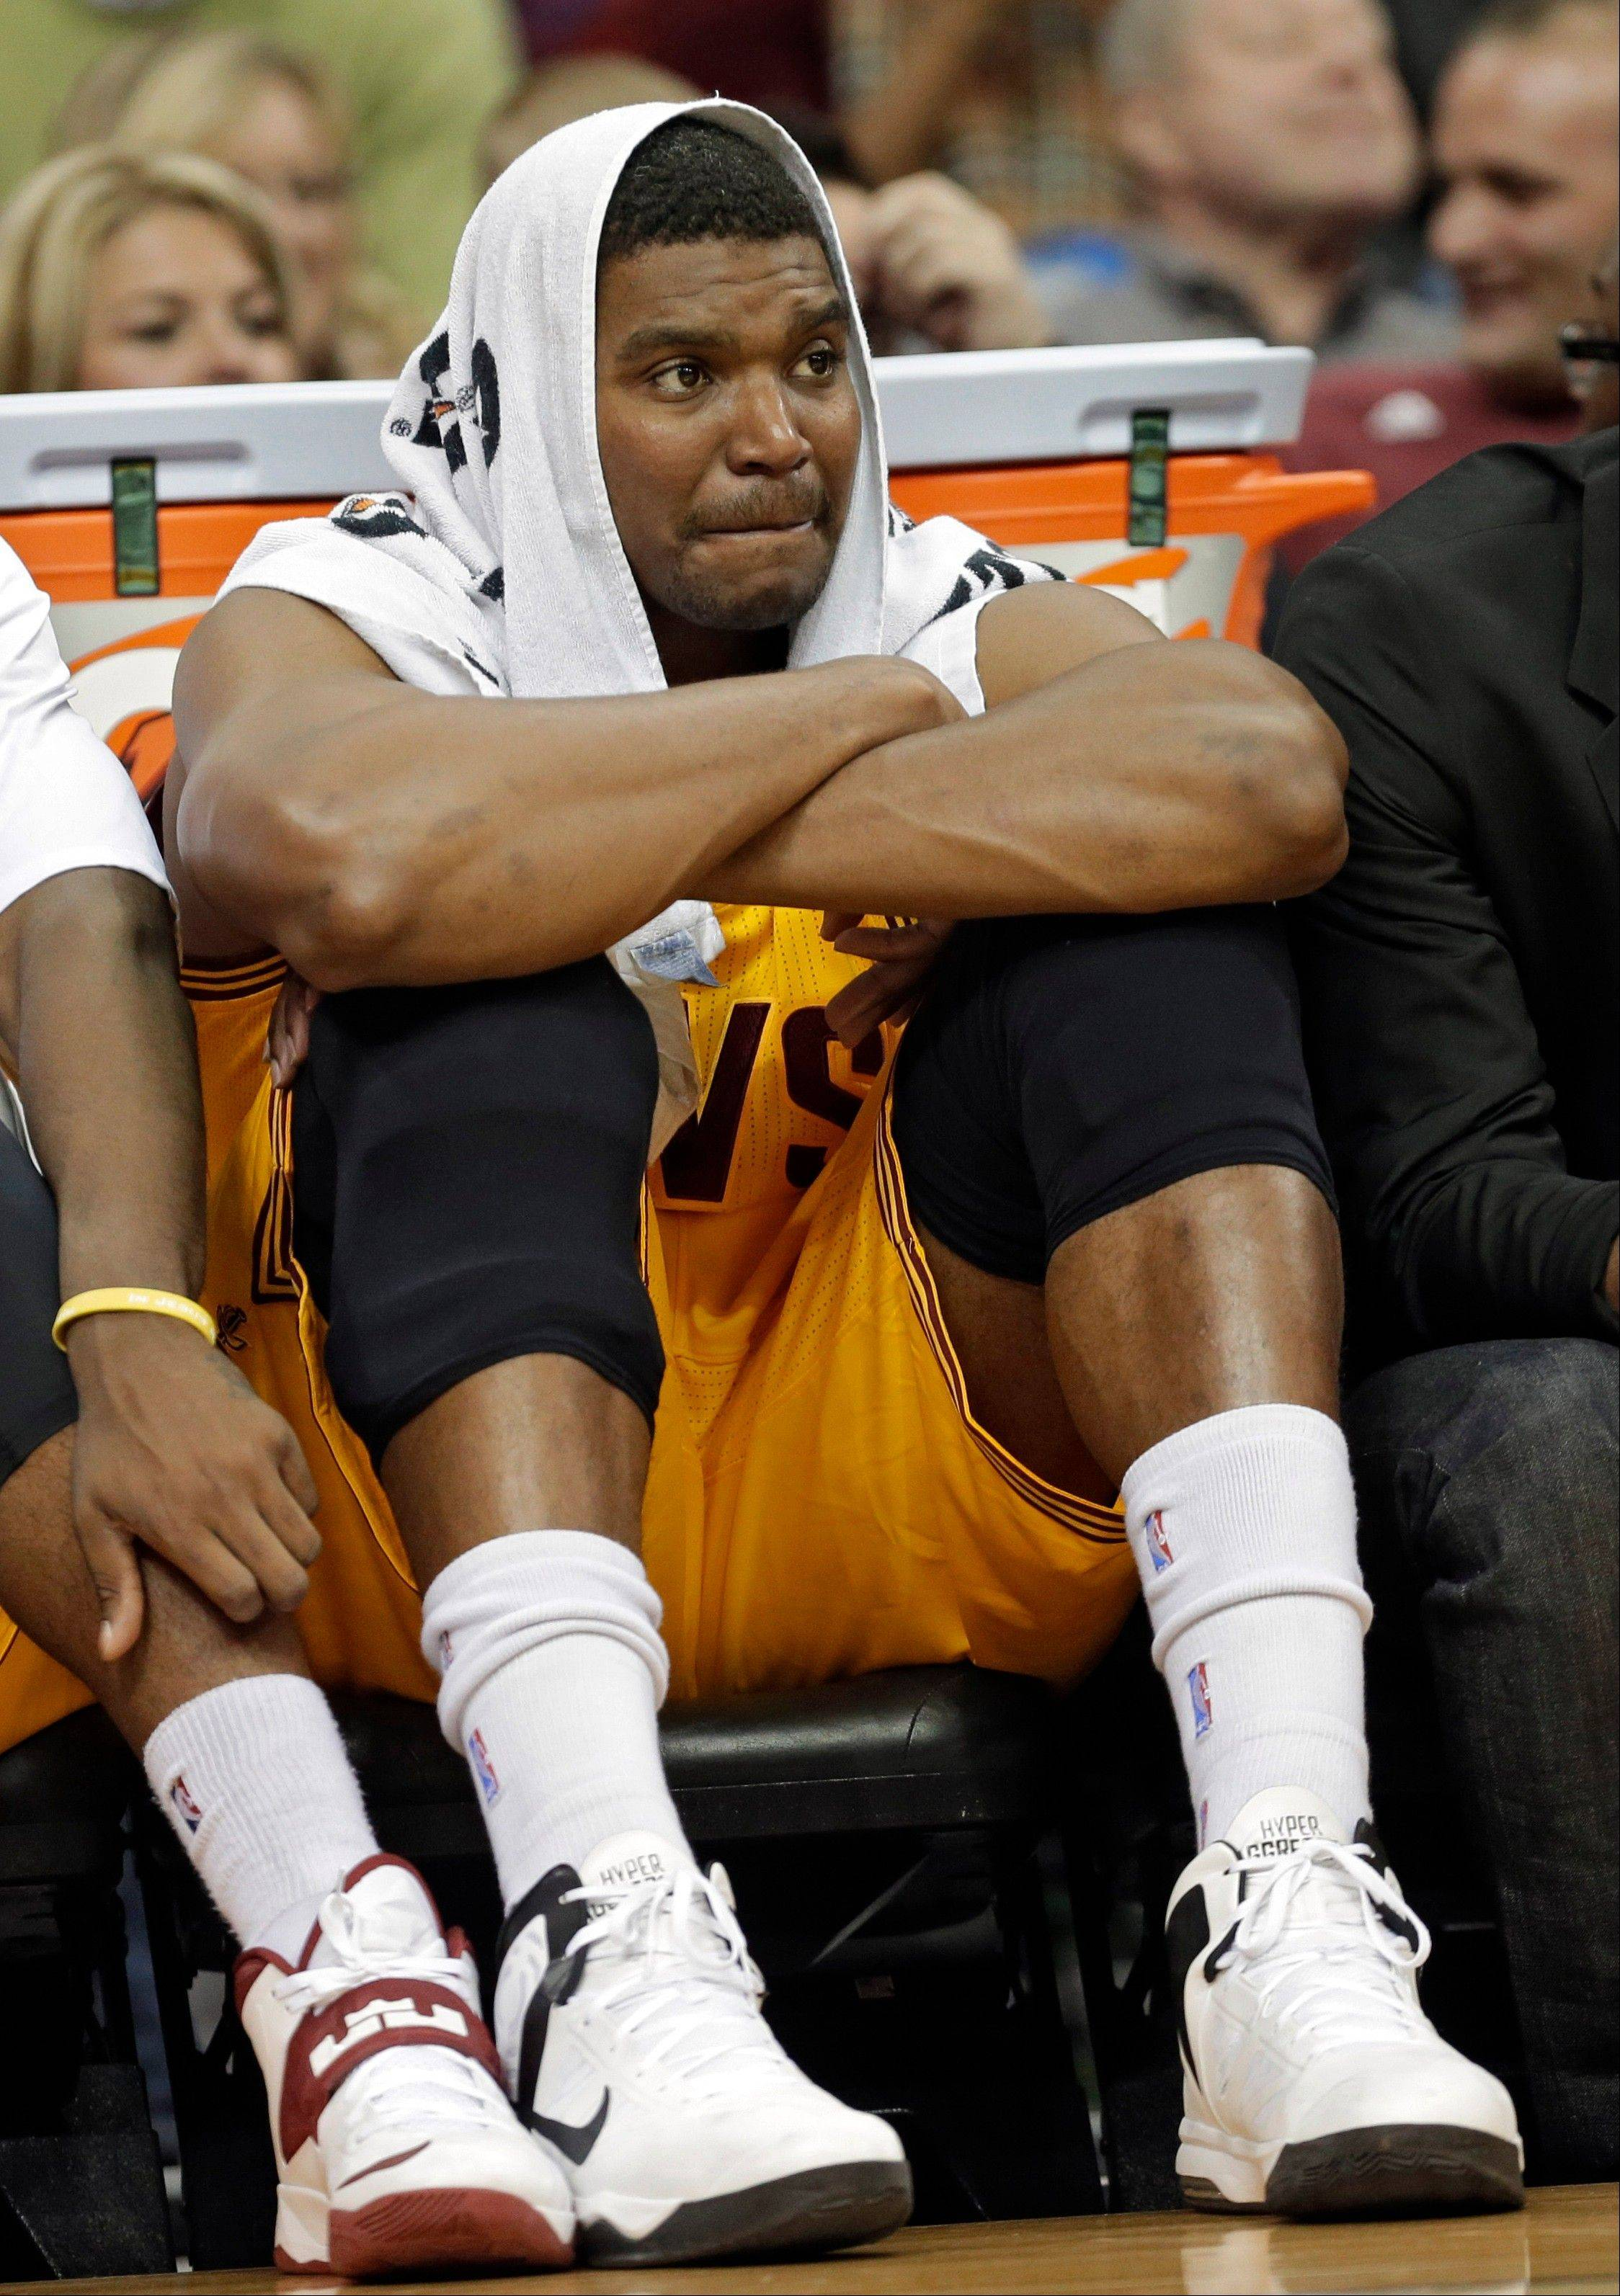 Cleveland center Andrew Bynum has been traded to the Bulls, along with three future draft picks.